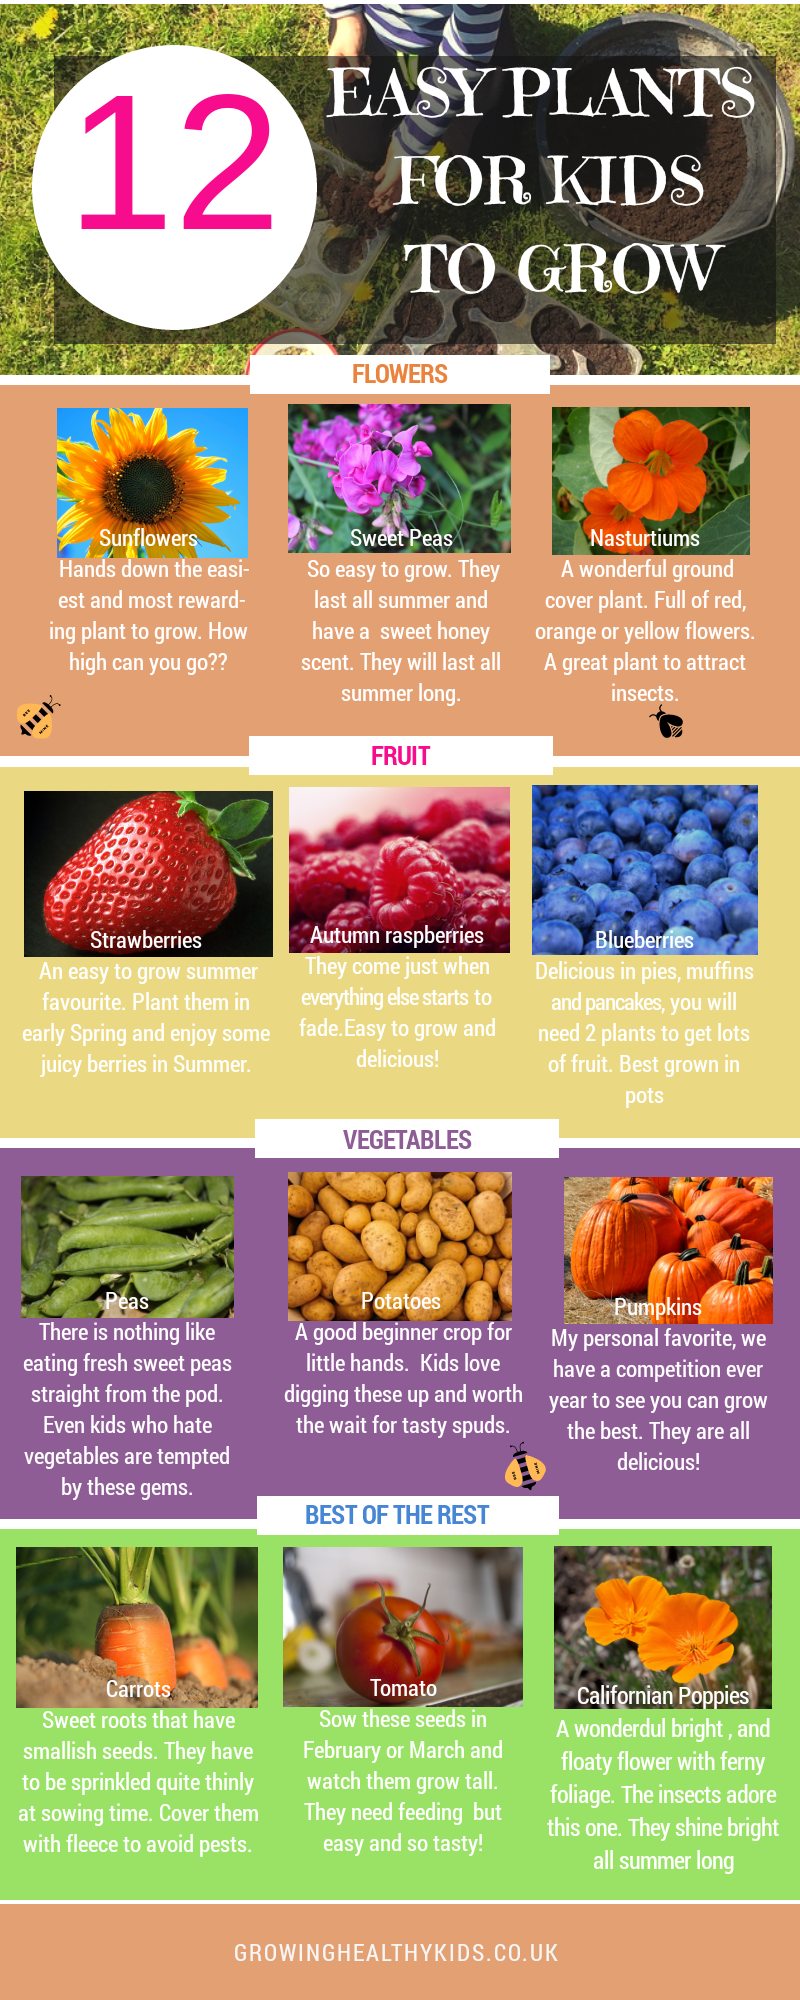 12 Vegetables To Plant In August Zone 9: 12 EASY PLANTS FOR KIDS TO GROW, Vegetables, Fruit